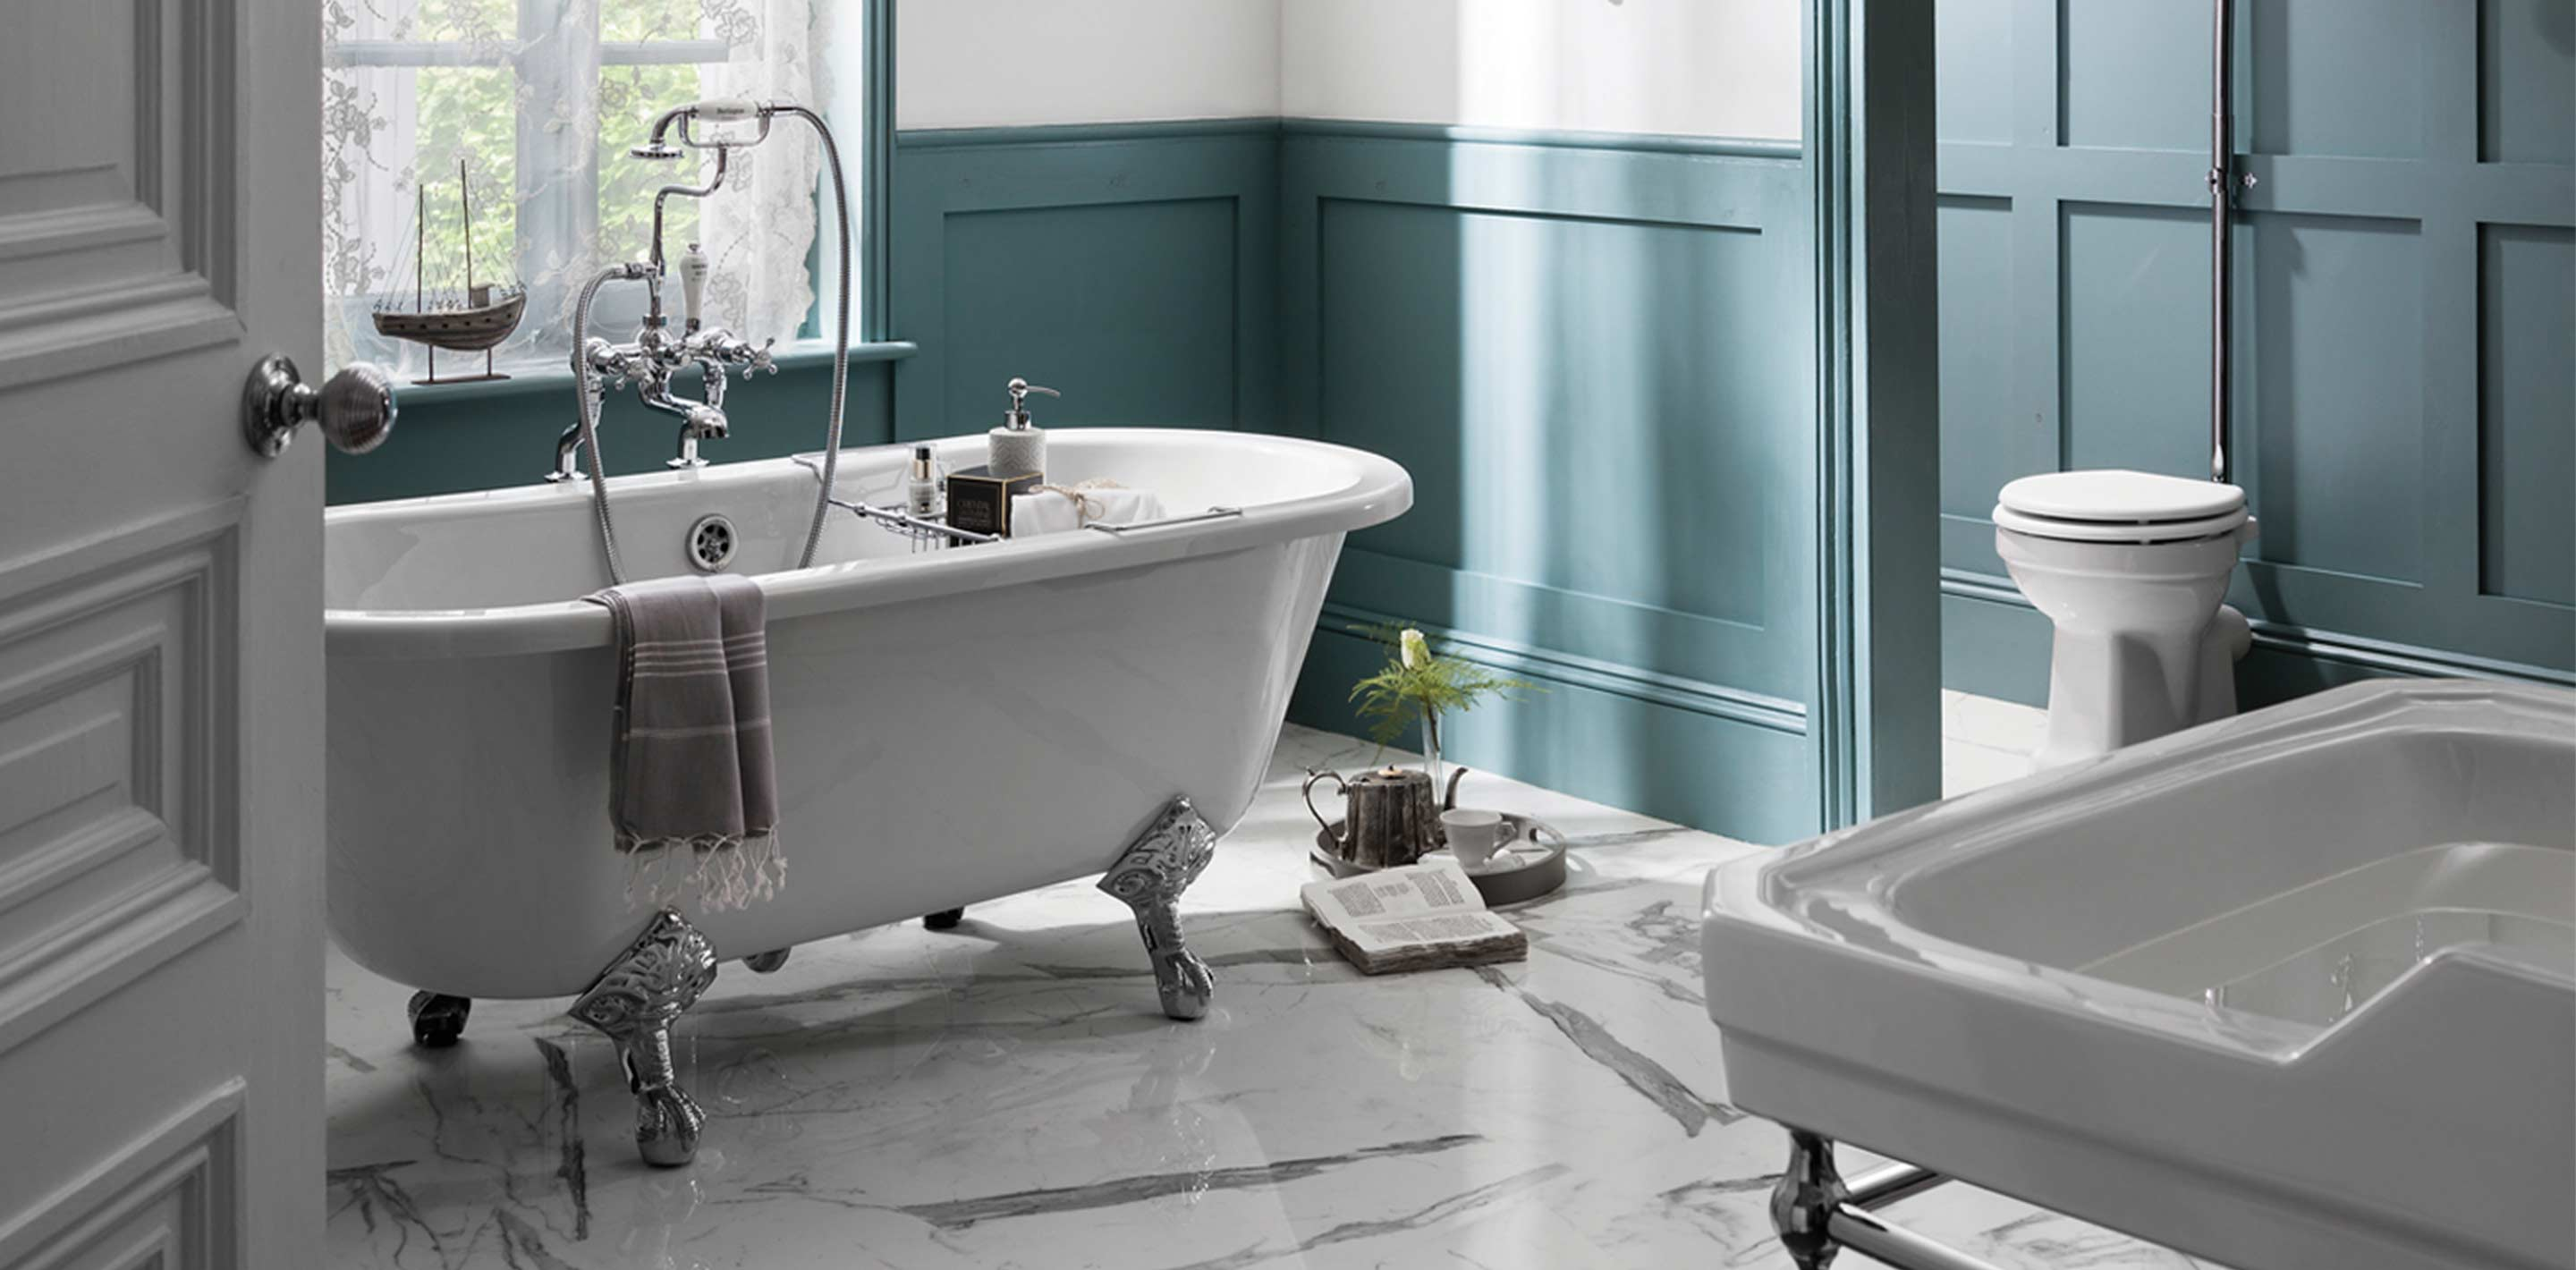 Foxwood tiles bathrooms sanitary ware services commercial latest news contact dailygadgetfo Gallery